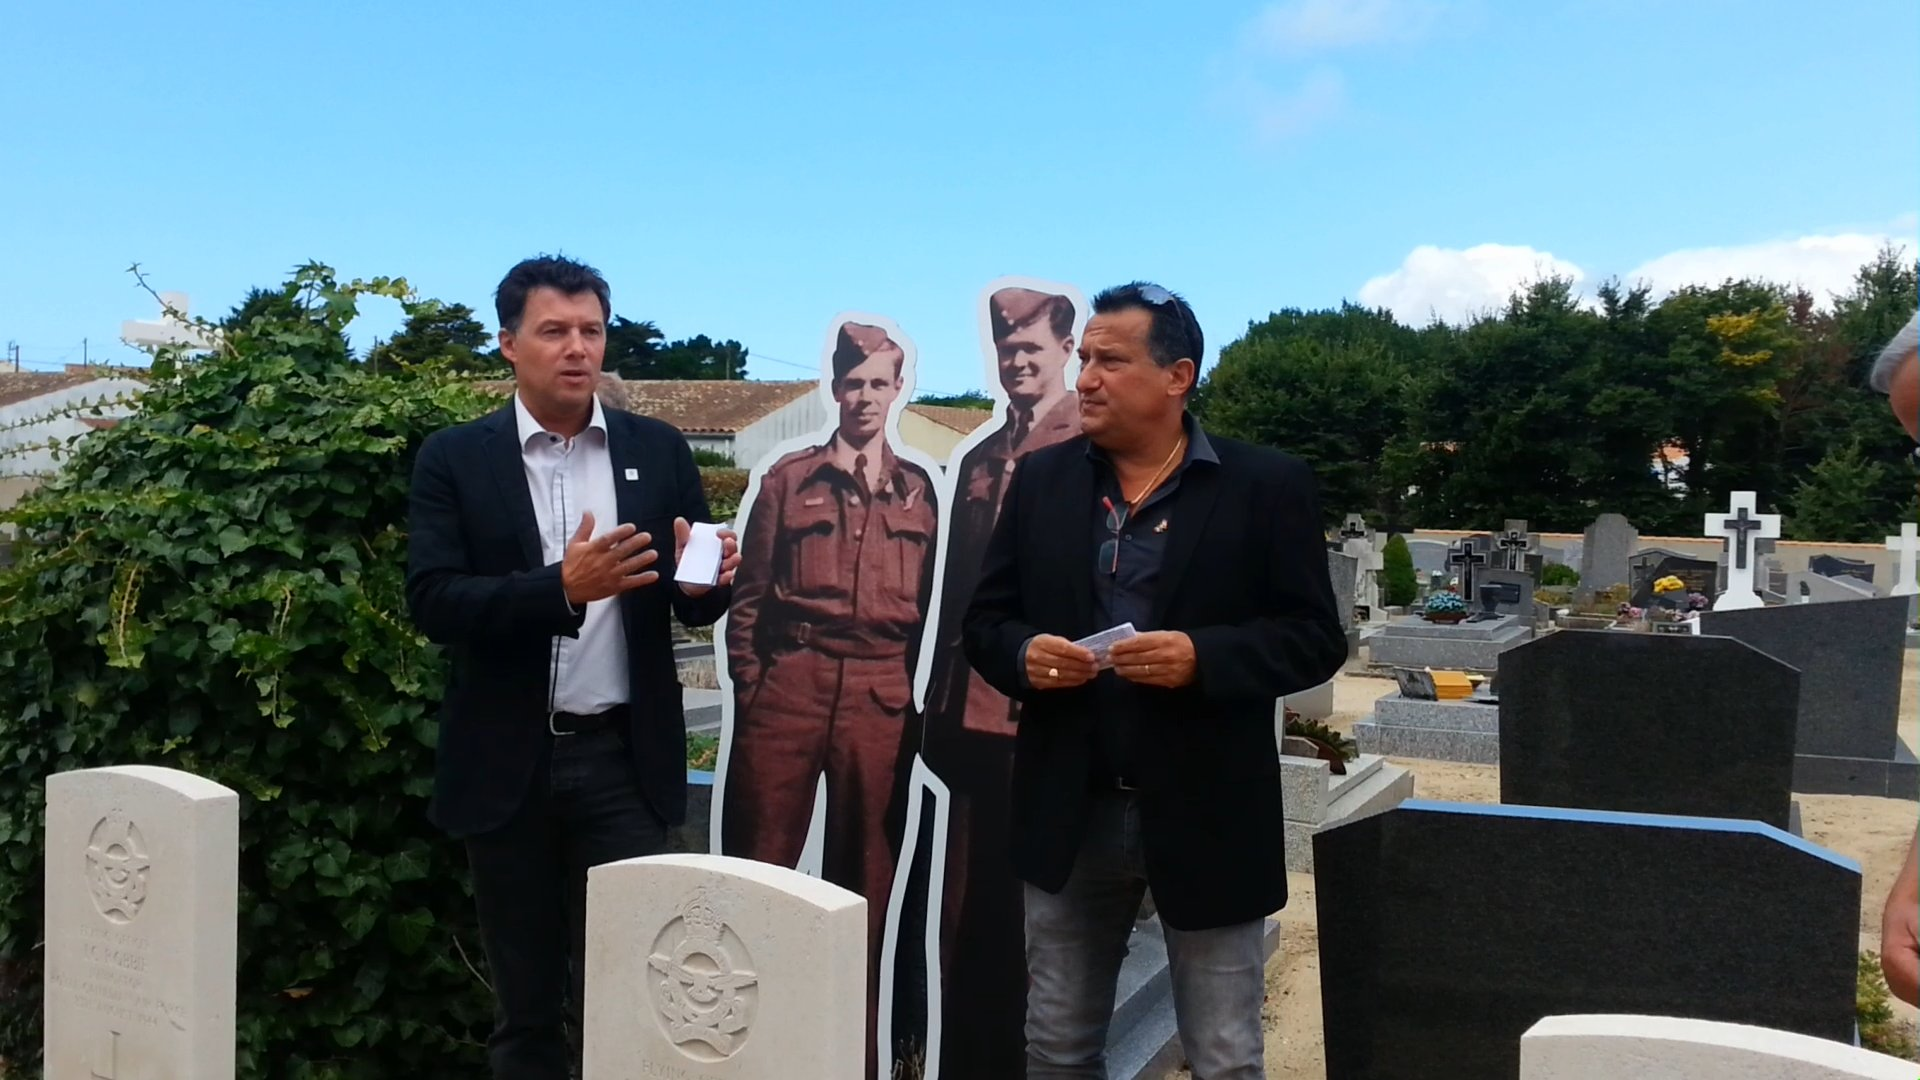 Photos of the commemorative ceremony on August 8, 2015, in Barbâtre, Île de Noirmoutier, France.